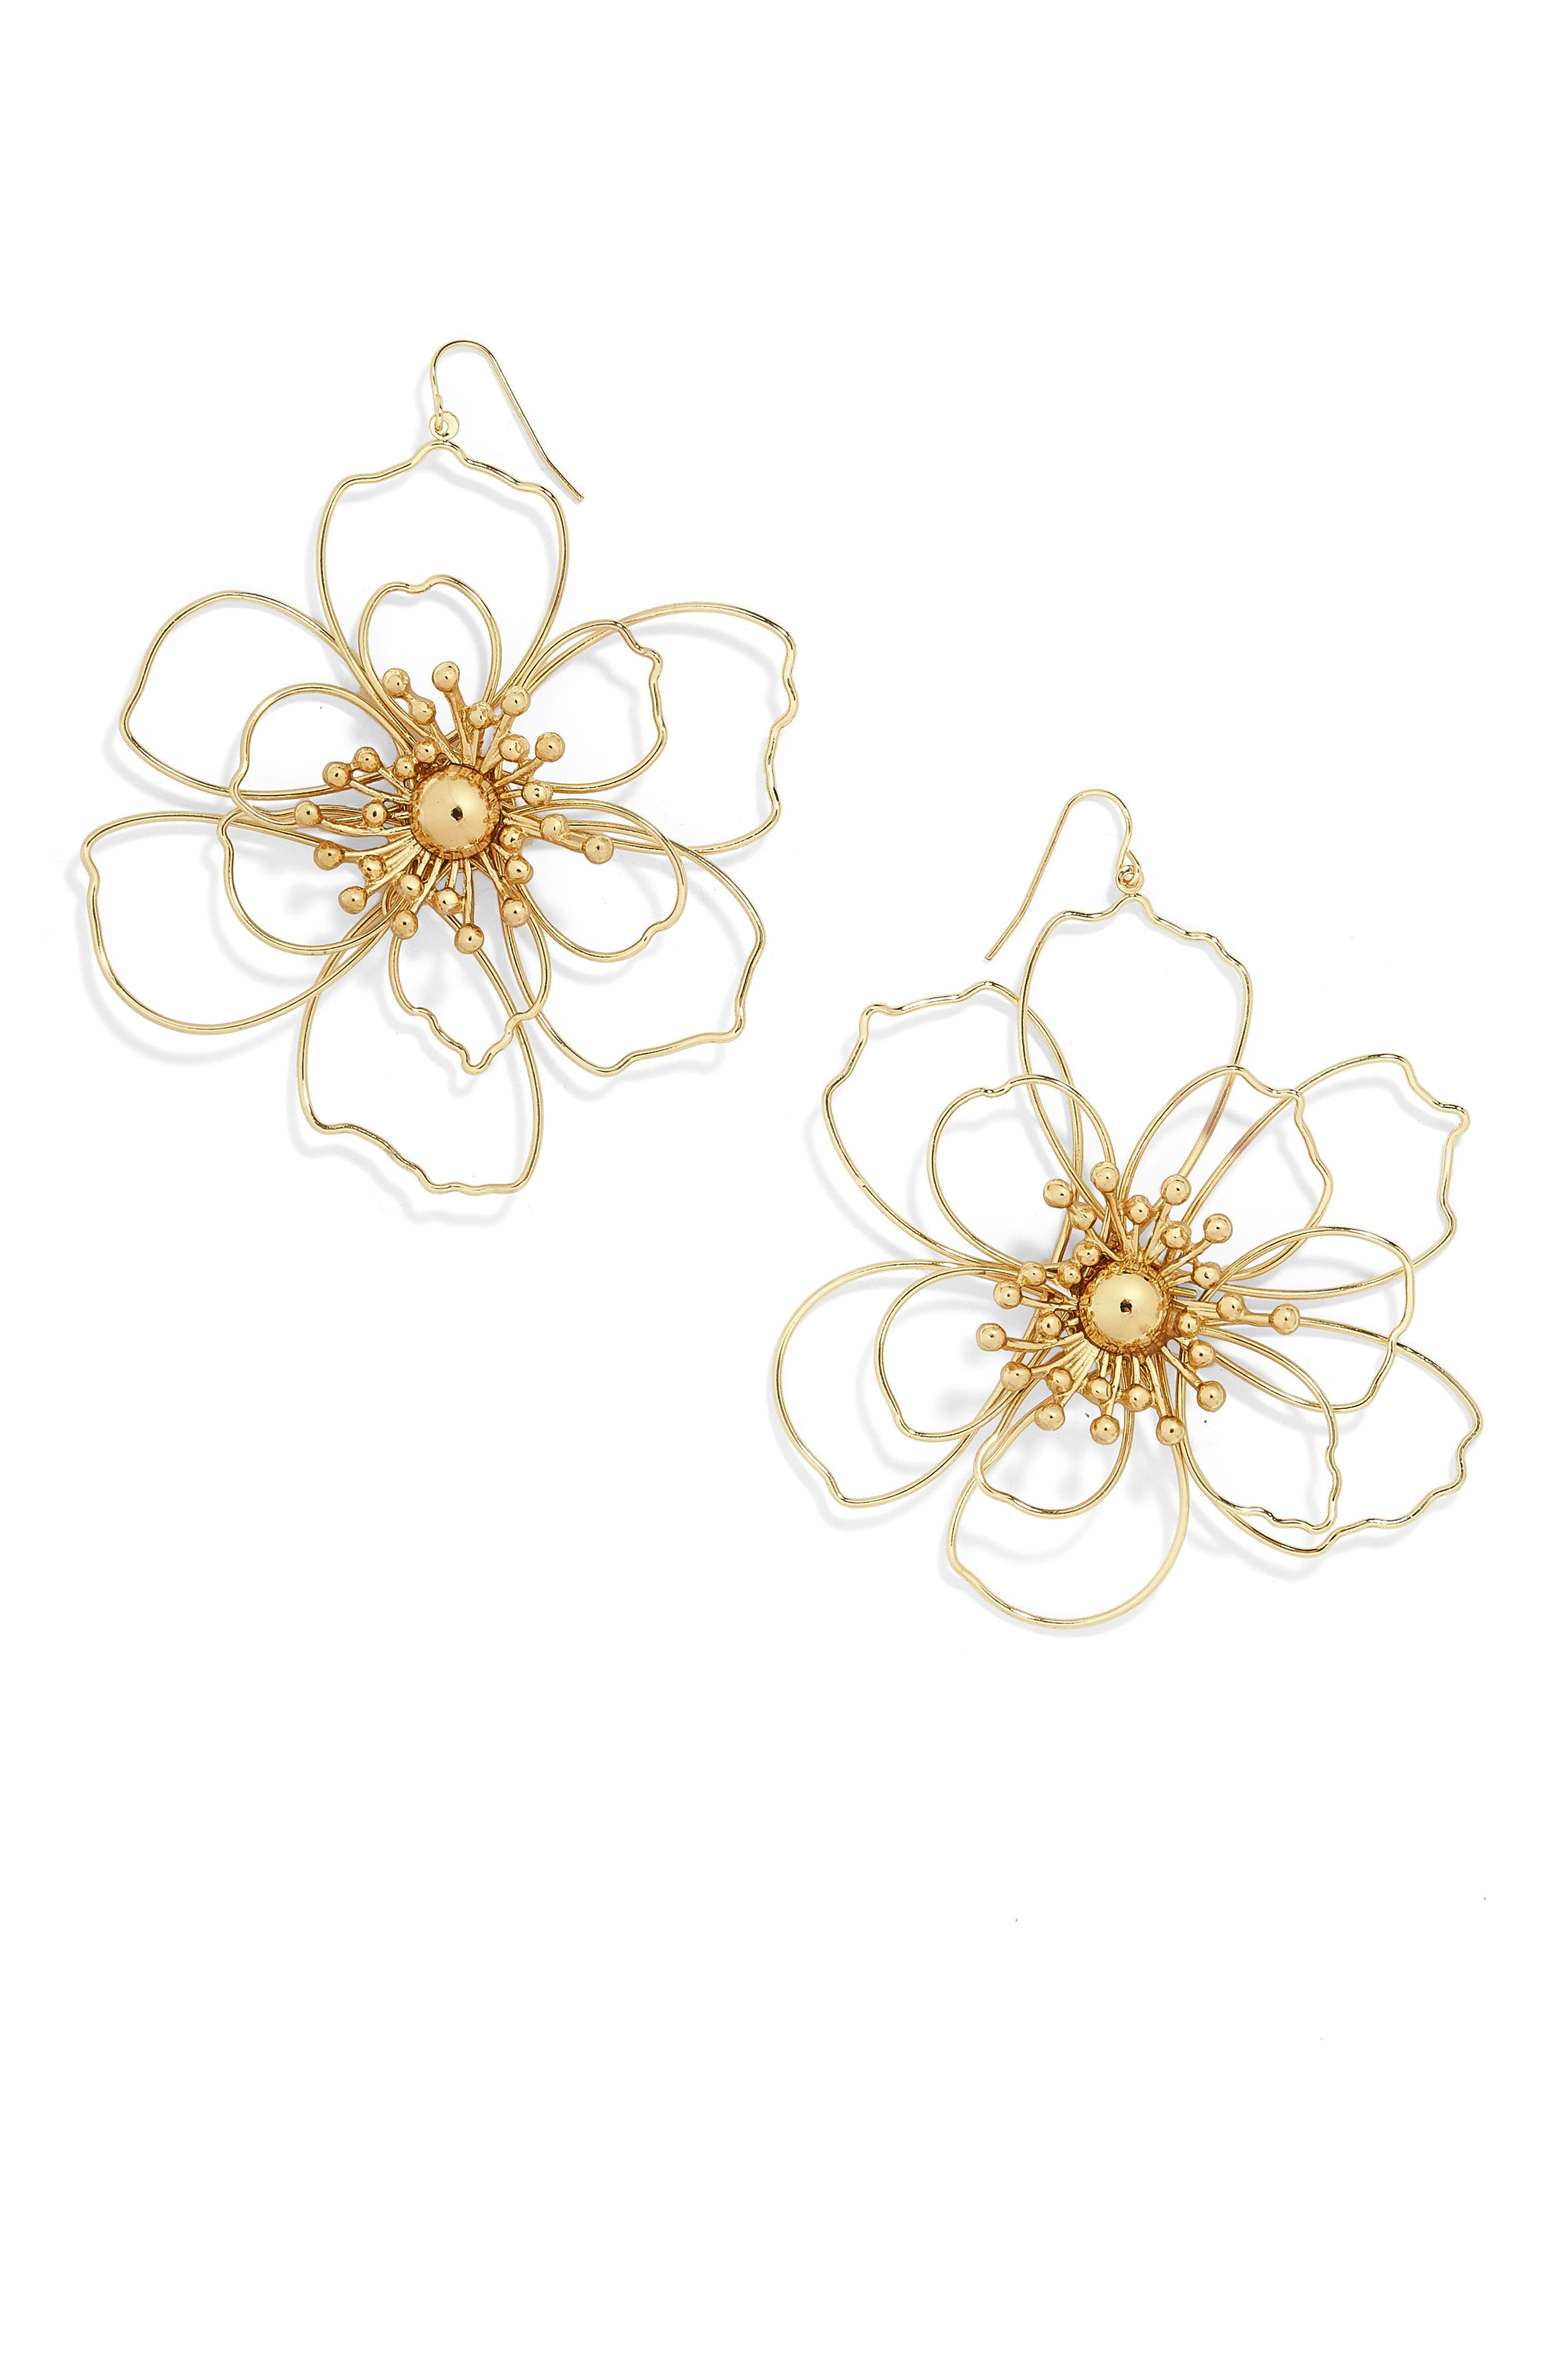 BAUBLEBAR Blossom Drop Earrings, Main, color, 710